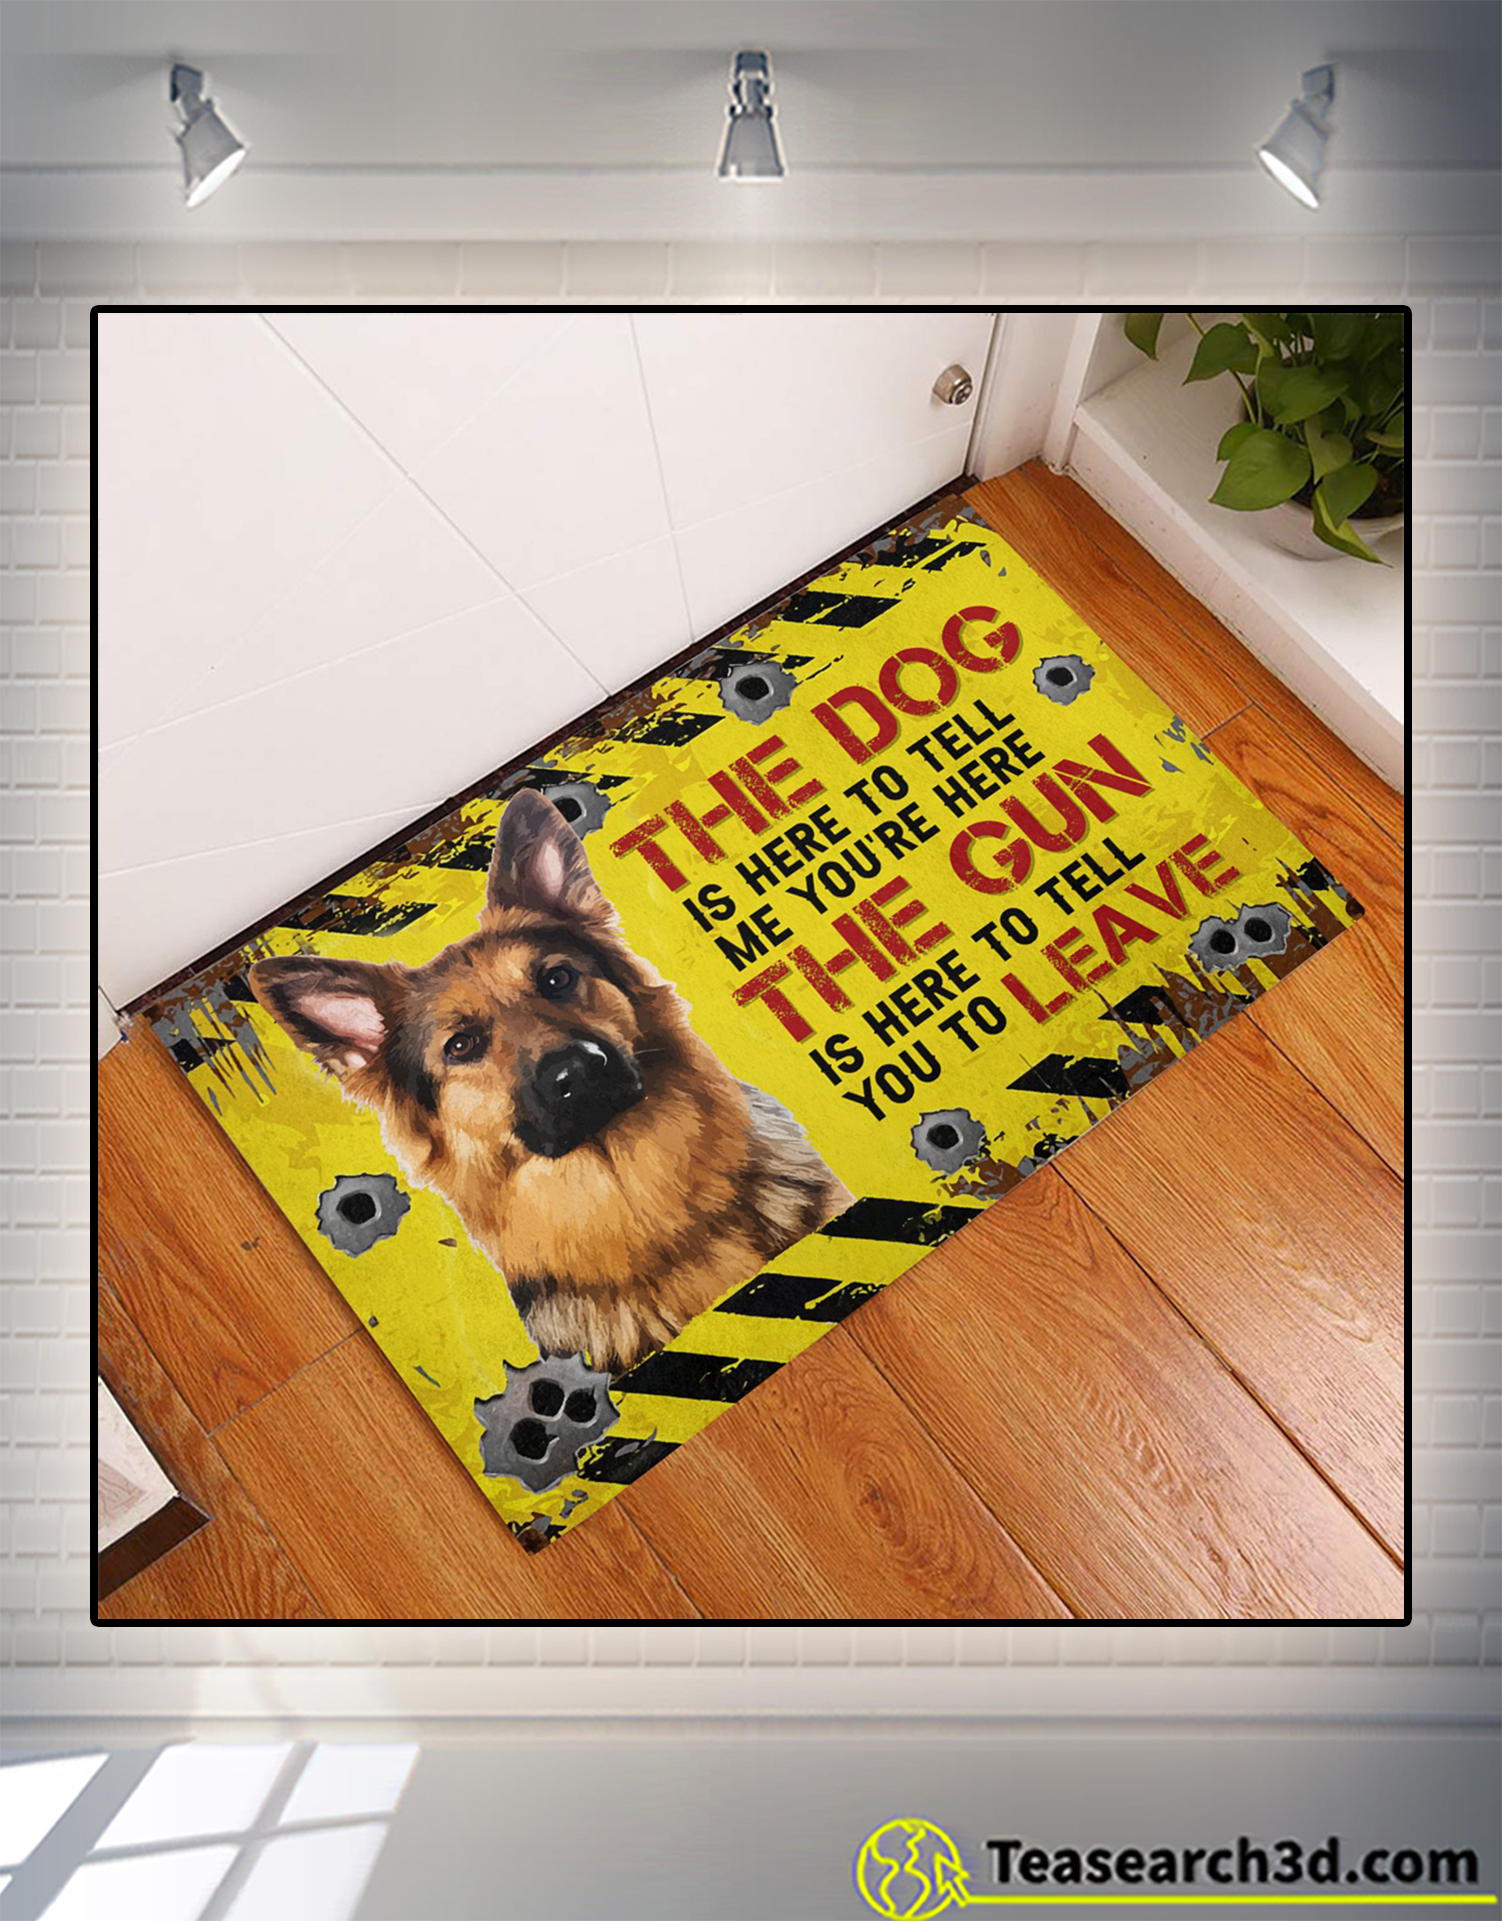 German Shepherd The dog is here to tell me you're here doormat